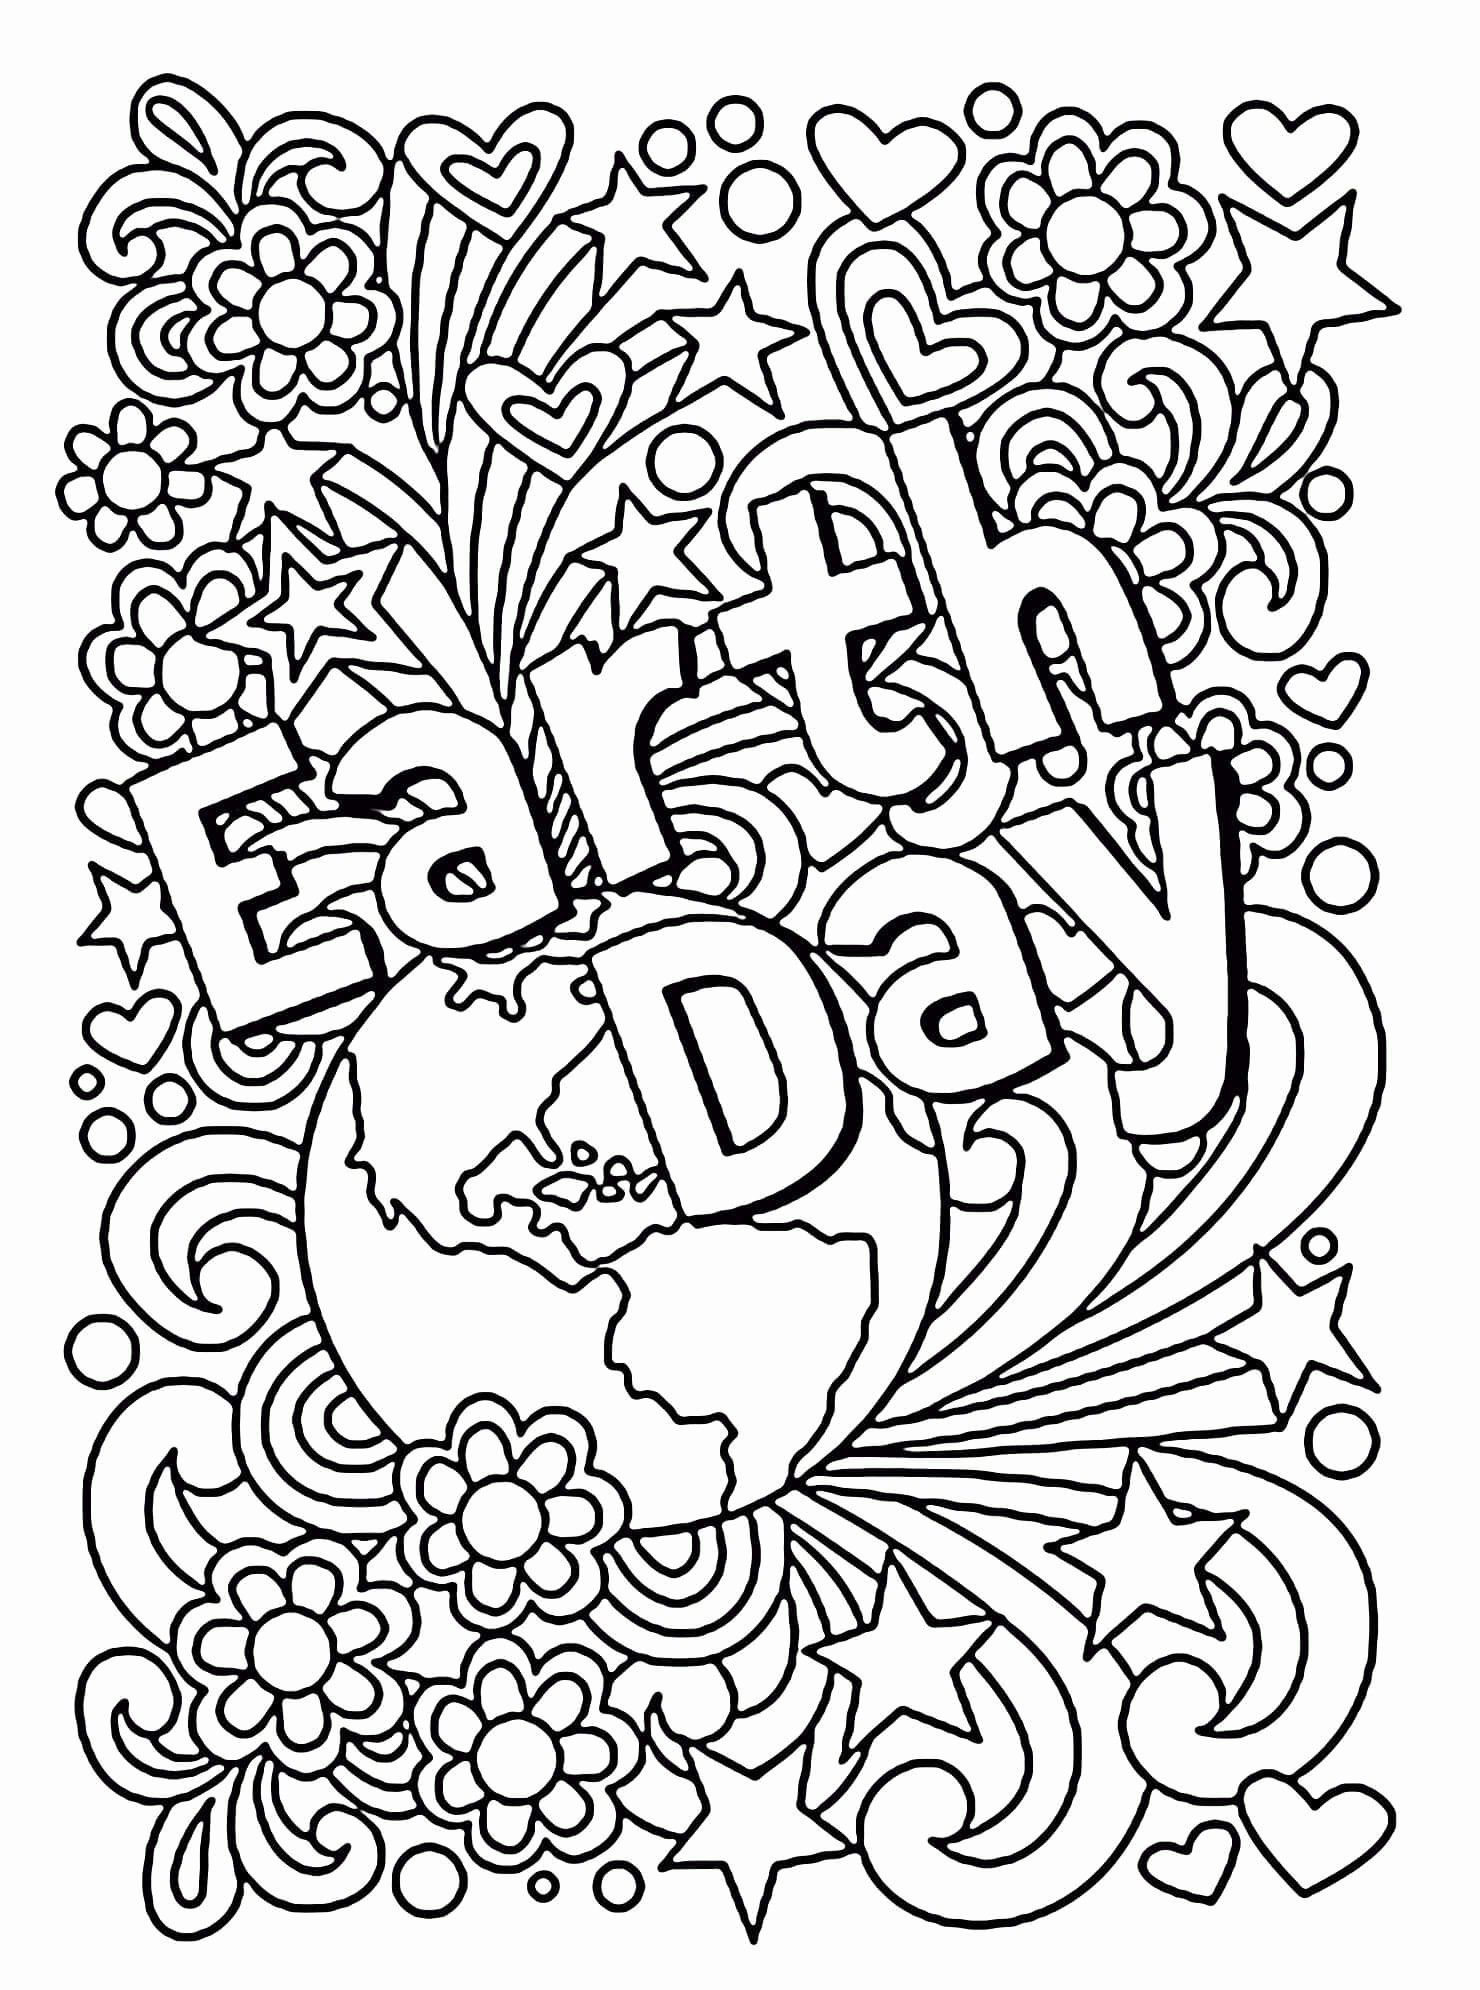 Printable Earth Day Coloring Pages In 2020 Earth Day Coloring Pages Coloring Pages Preschool Learning Activities